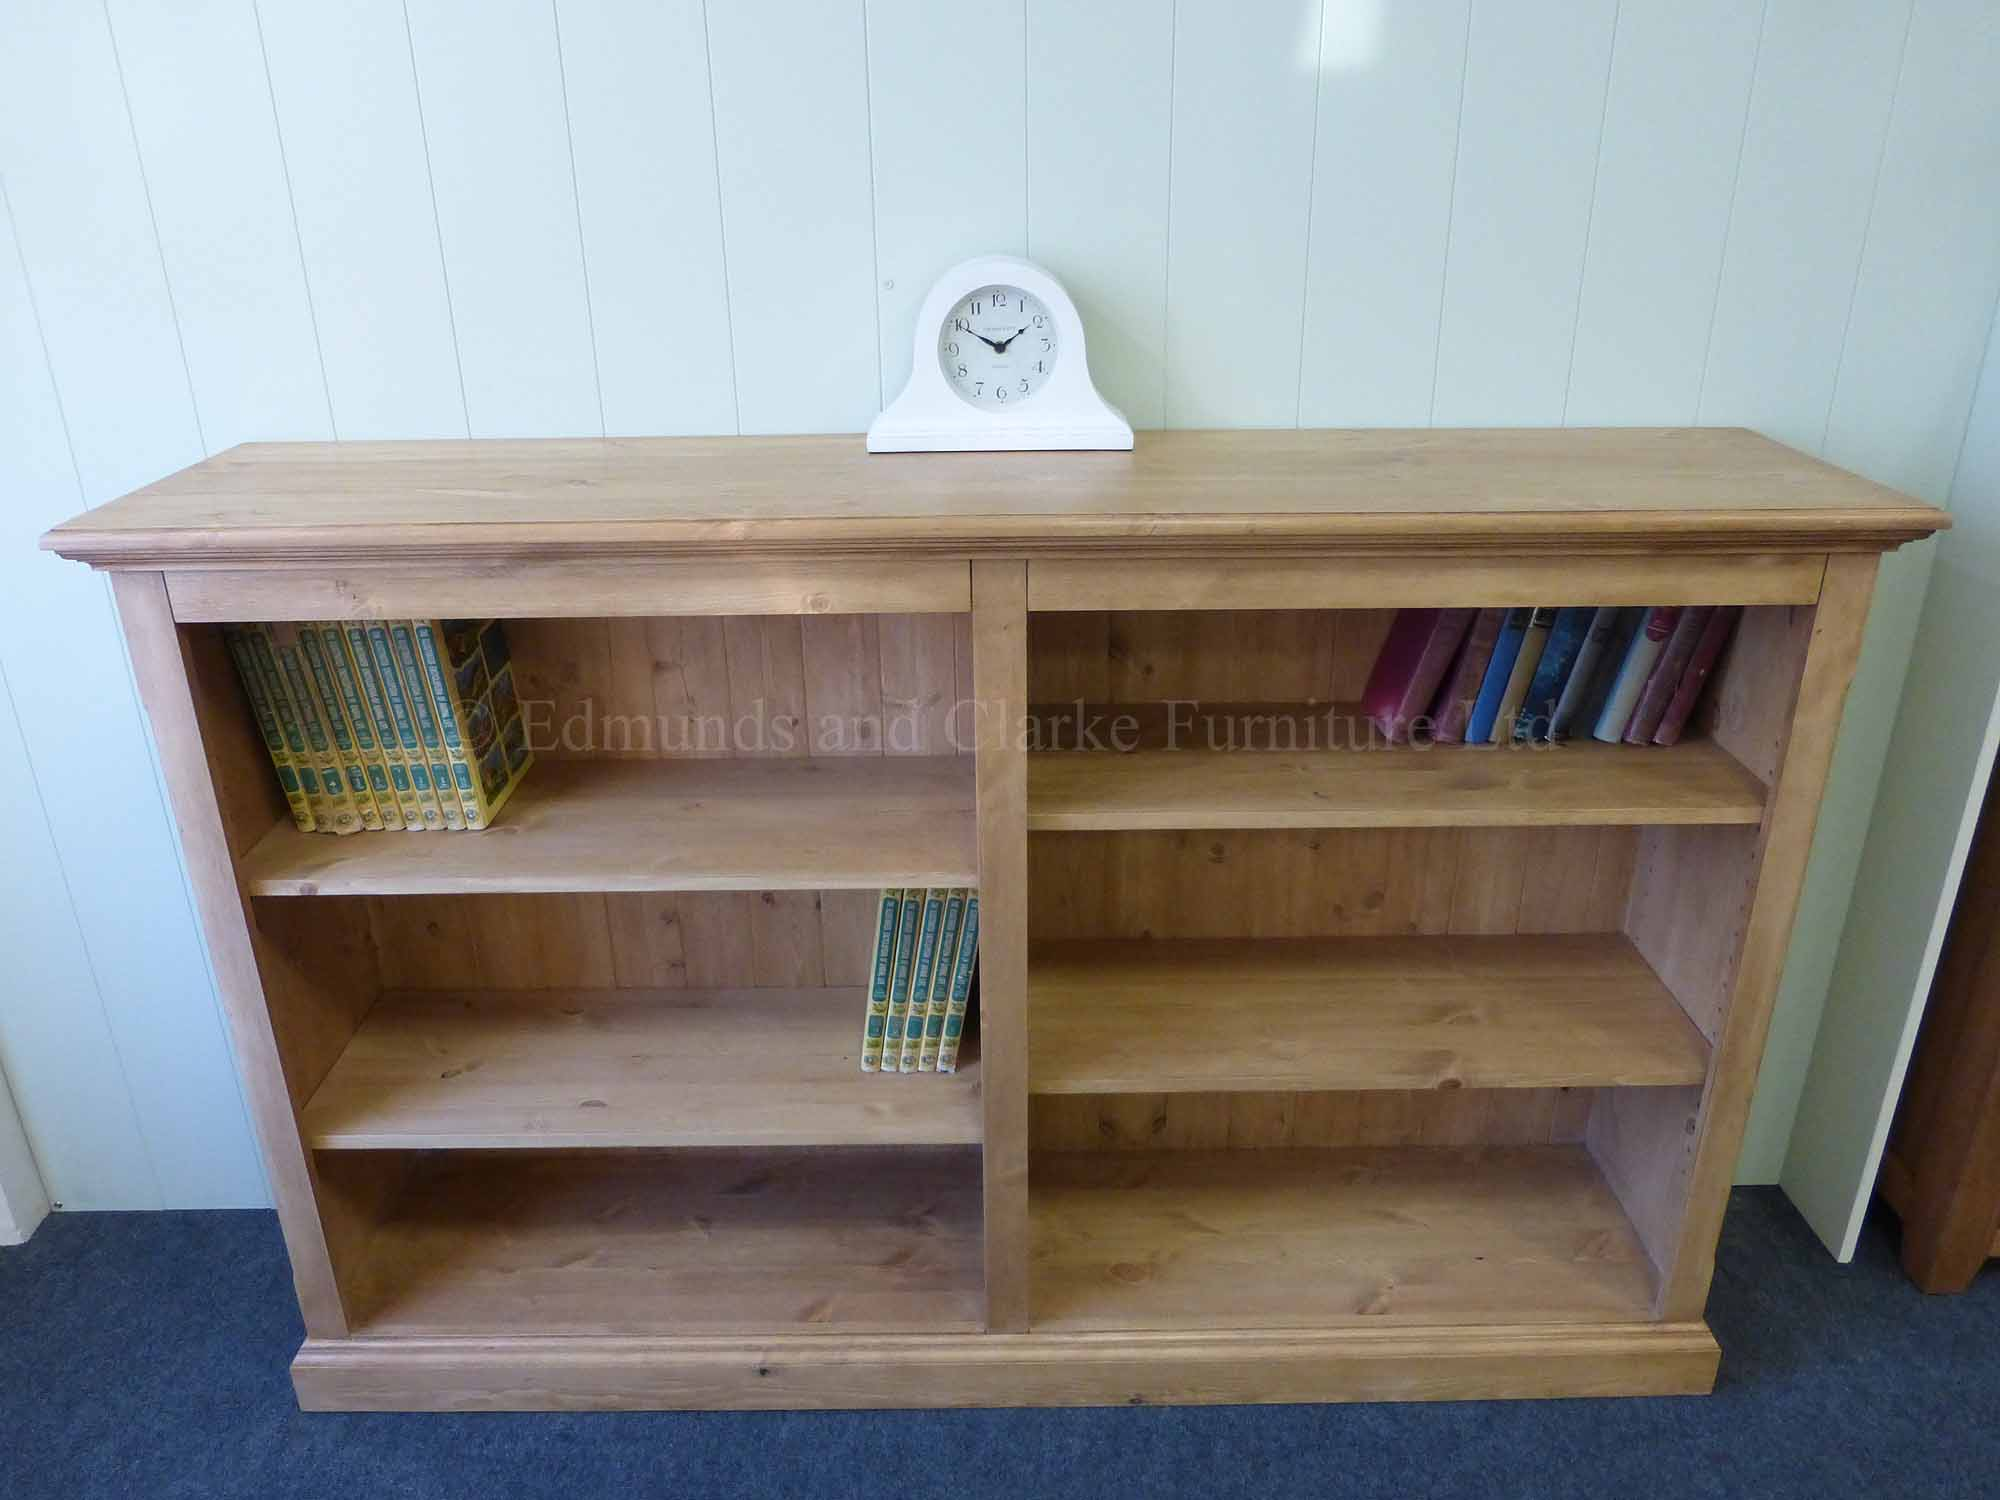 Edmunds twin waxed pine bookcase with four adjustable shelves